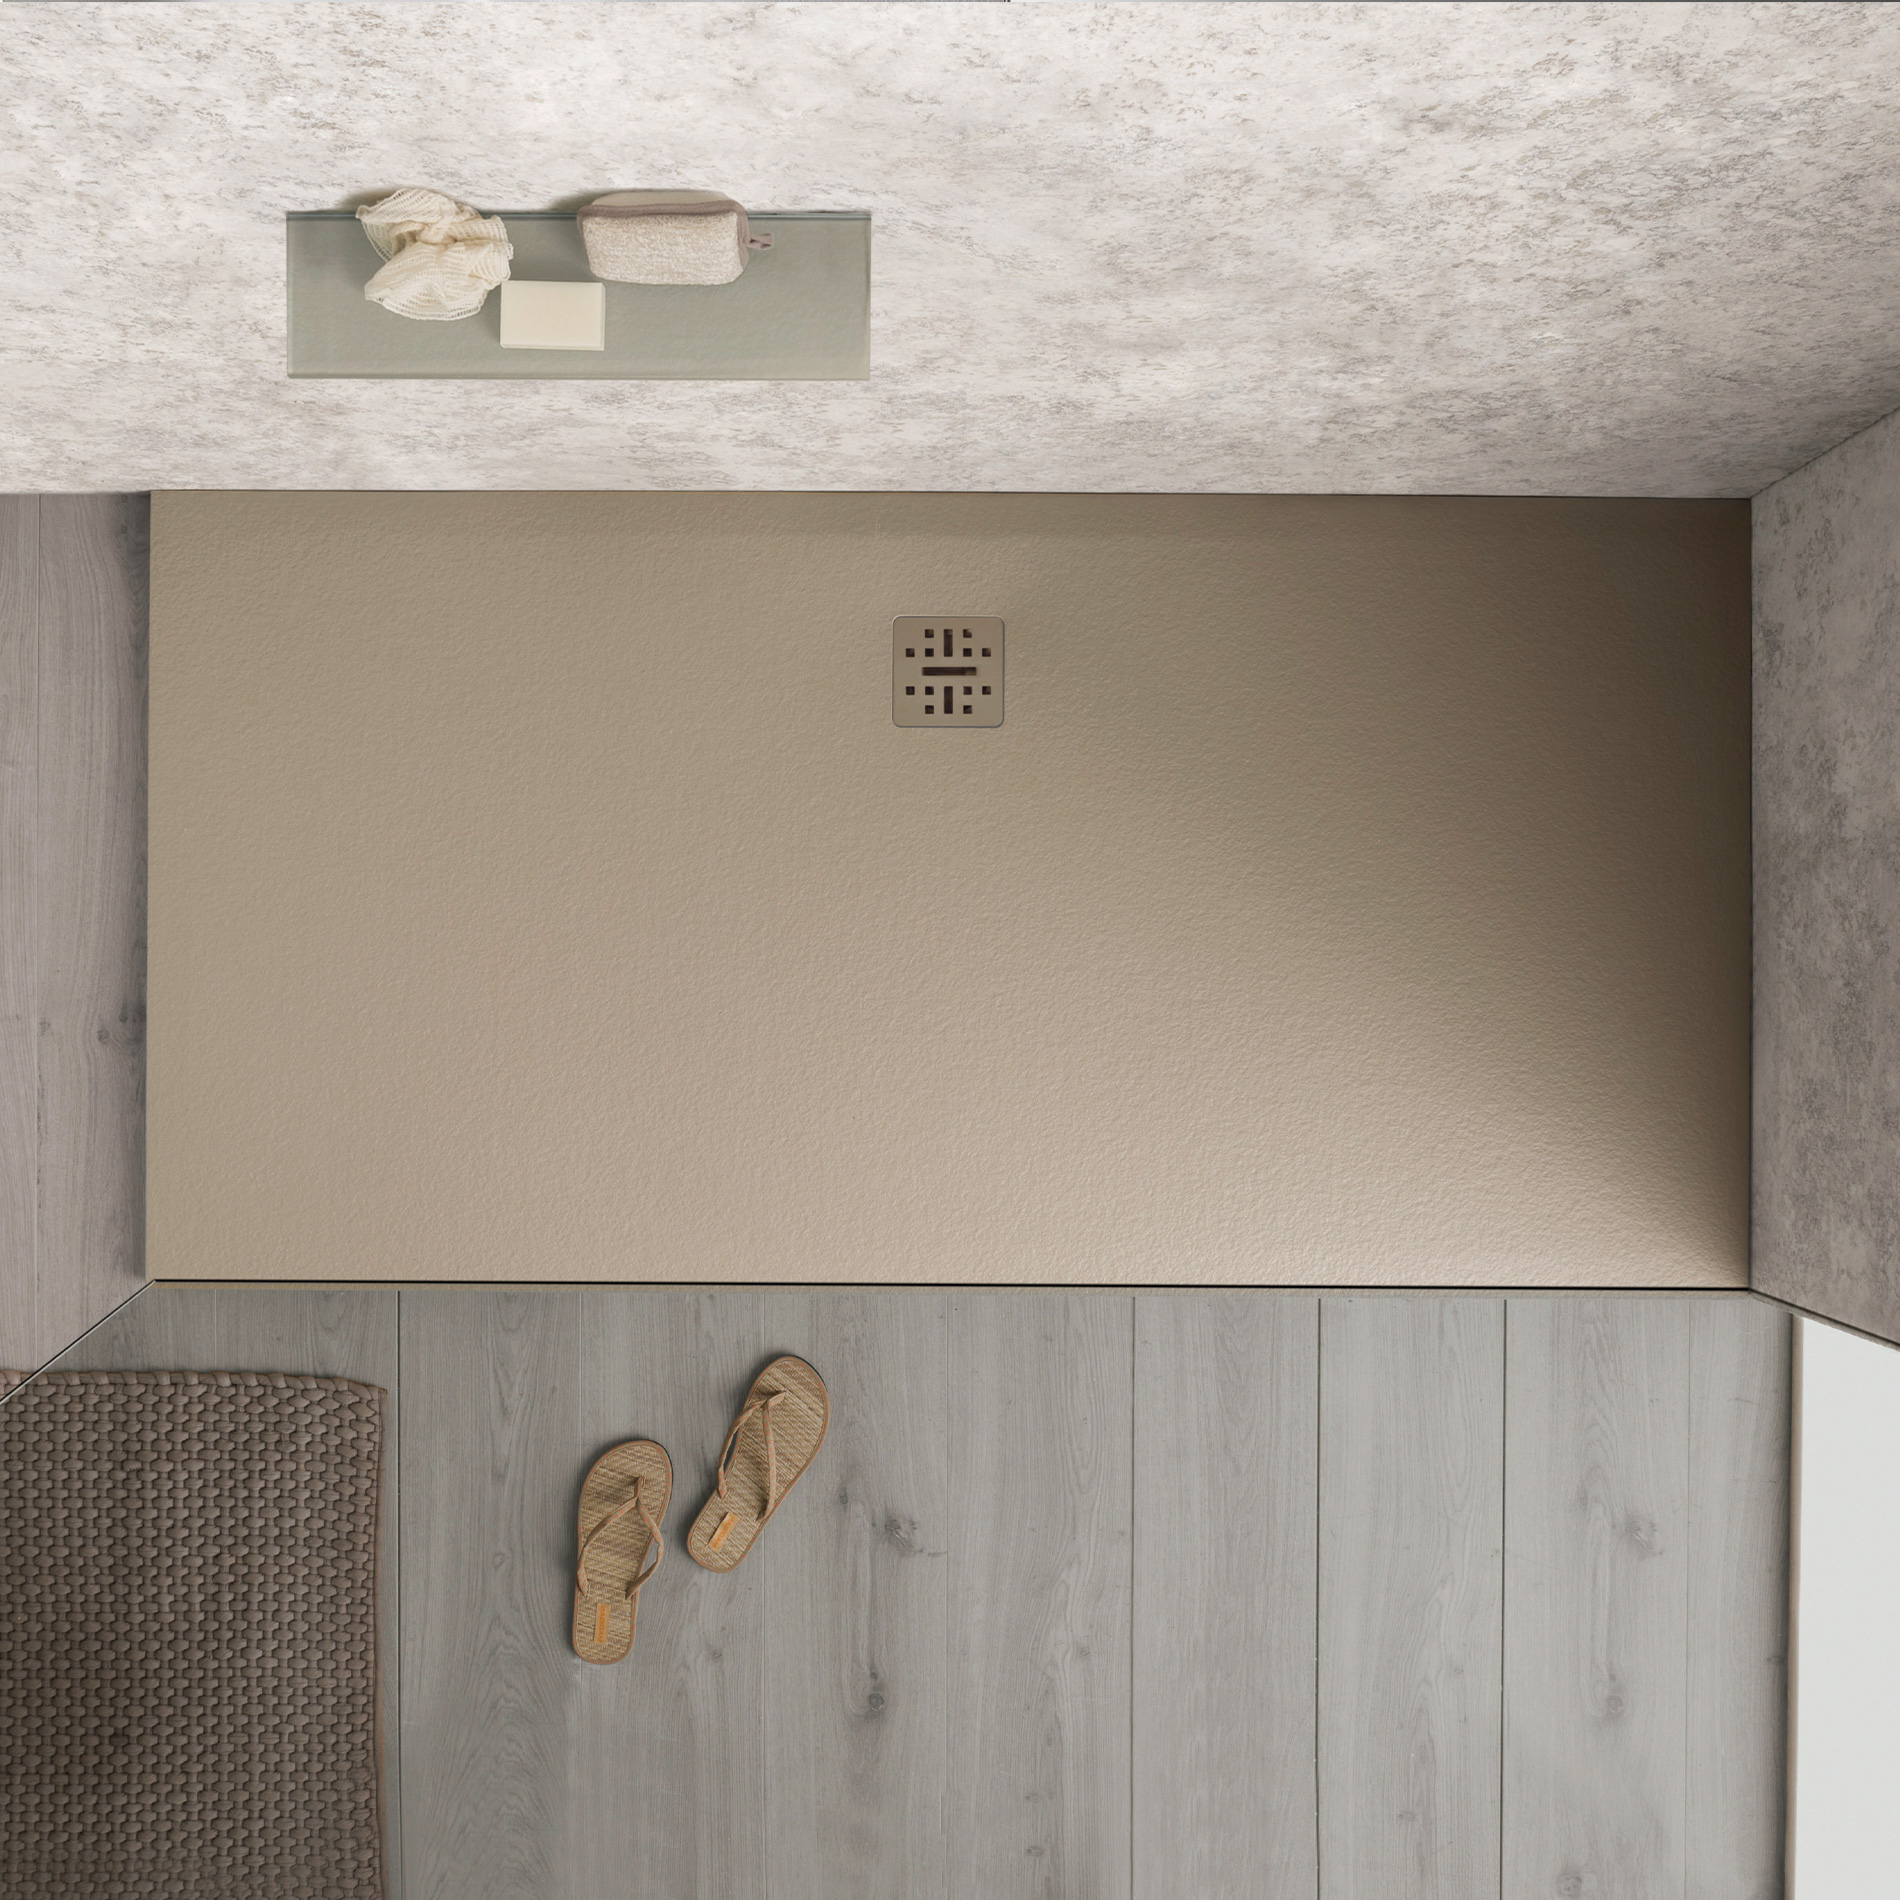 Nicos-International-home-products-Ceramiche-Globo-shower-tray-1